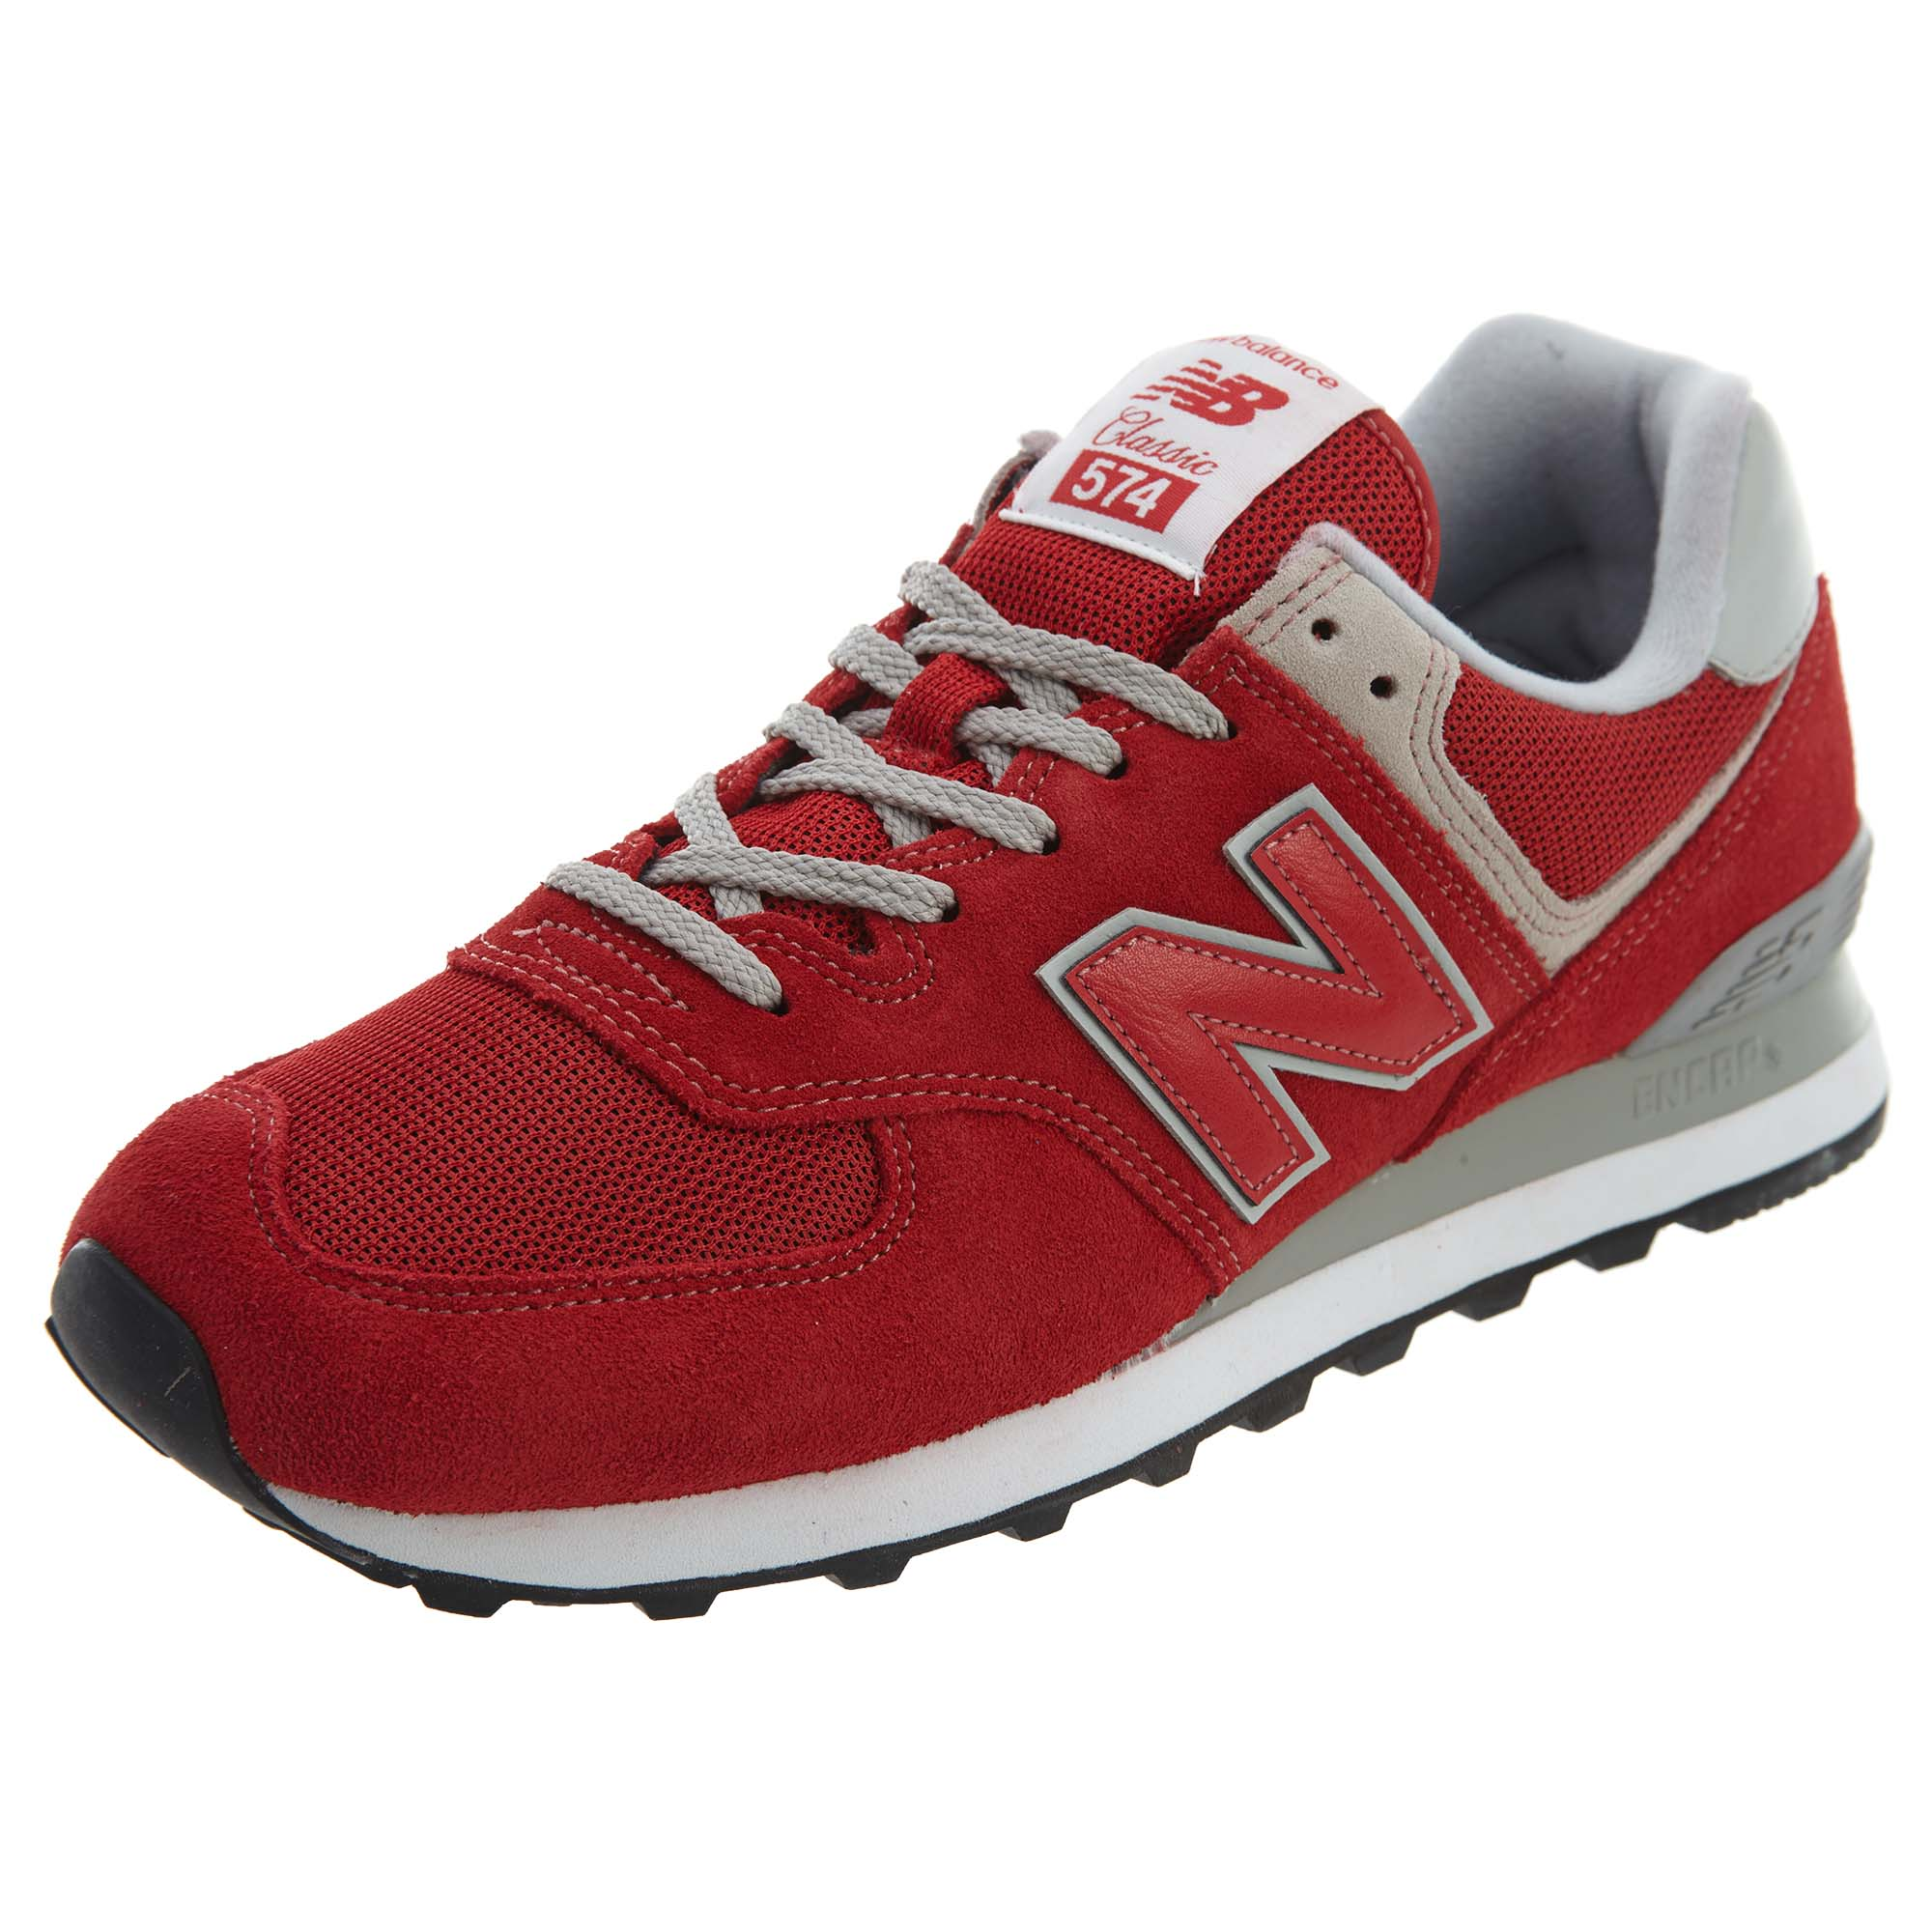 Details about New Balance Mens 574 Classic Running Shoes Red Silver ML574 -ERD ce480b0c0e